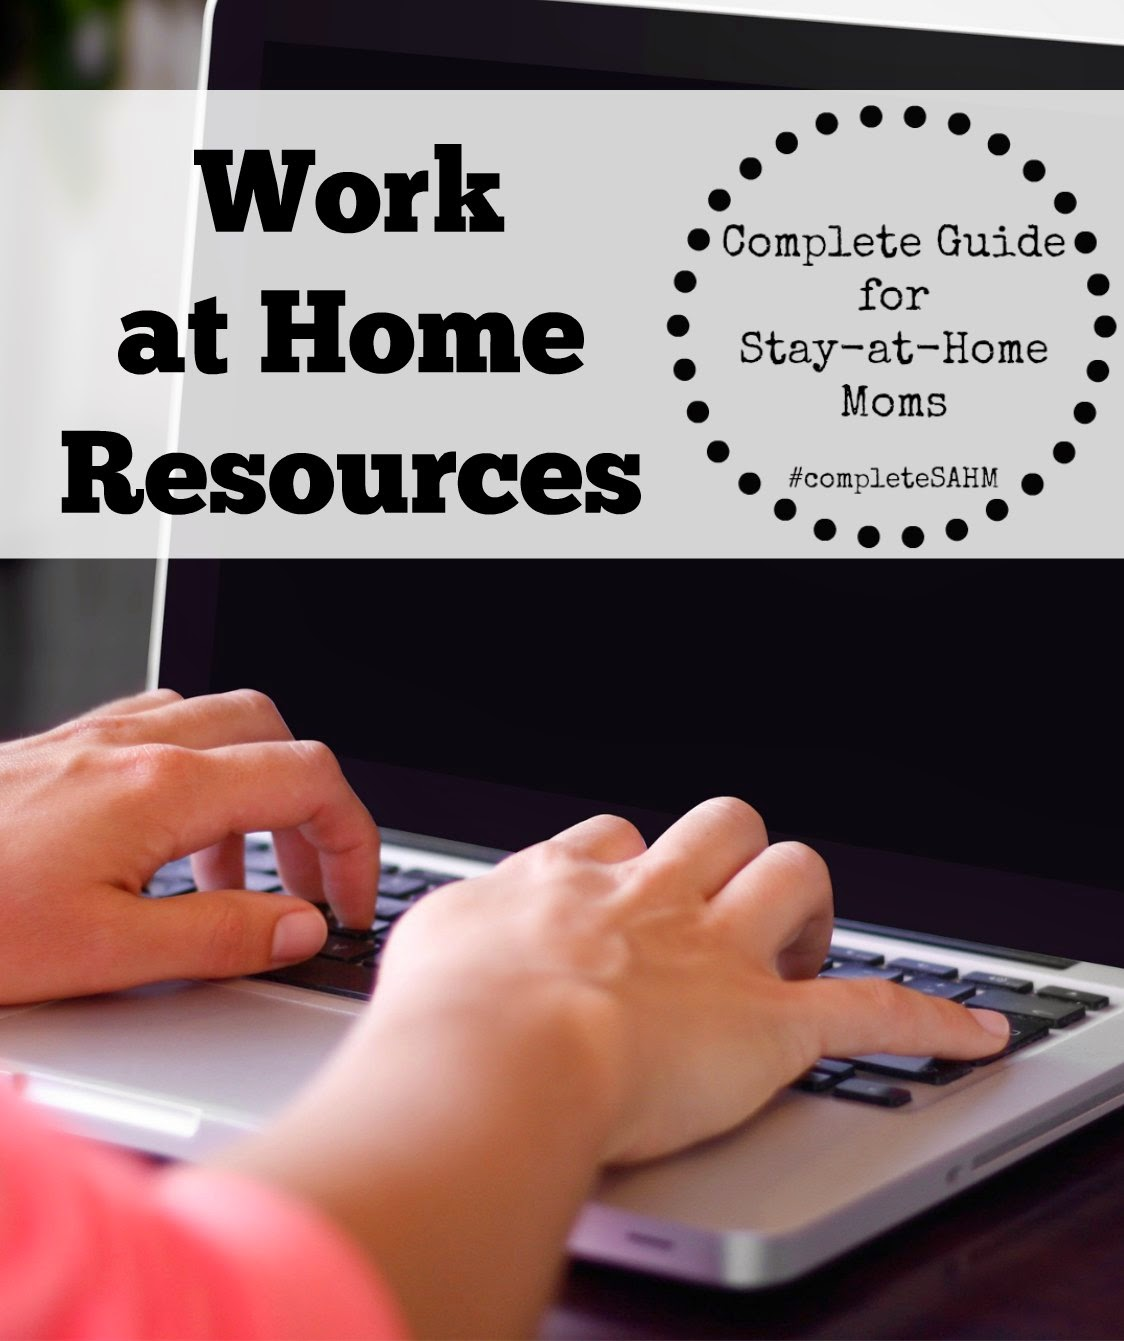 Complete Guide for Stay-at-Home Moms: Work at Home Resources